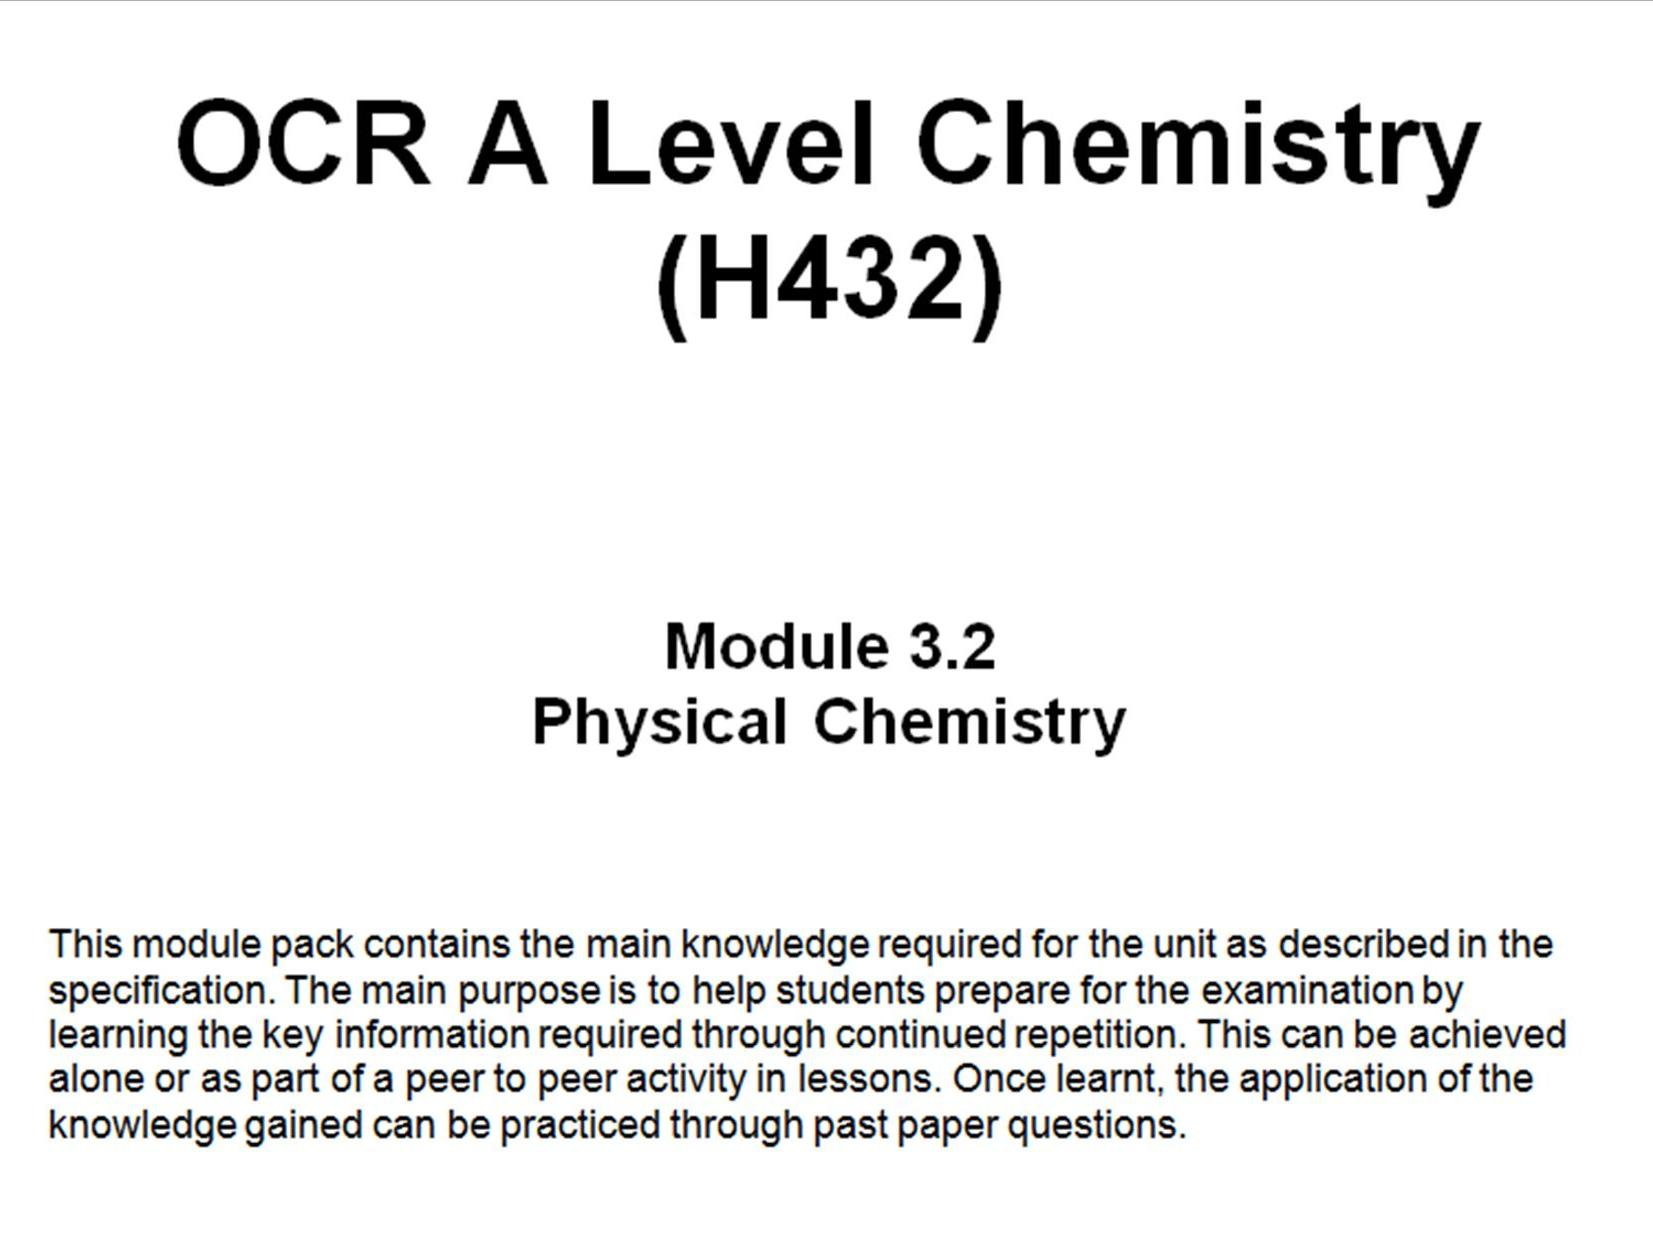 Ocr a level chemistry h432 module 31 the periodic table by ocr a level chemistry h432 module 31 the periodic table by sjriches teaching resources tes urtaz Gallery